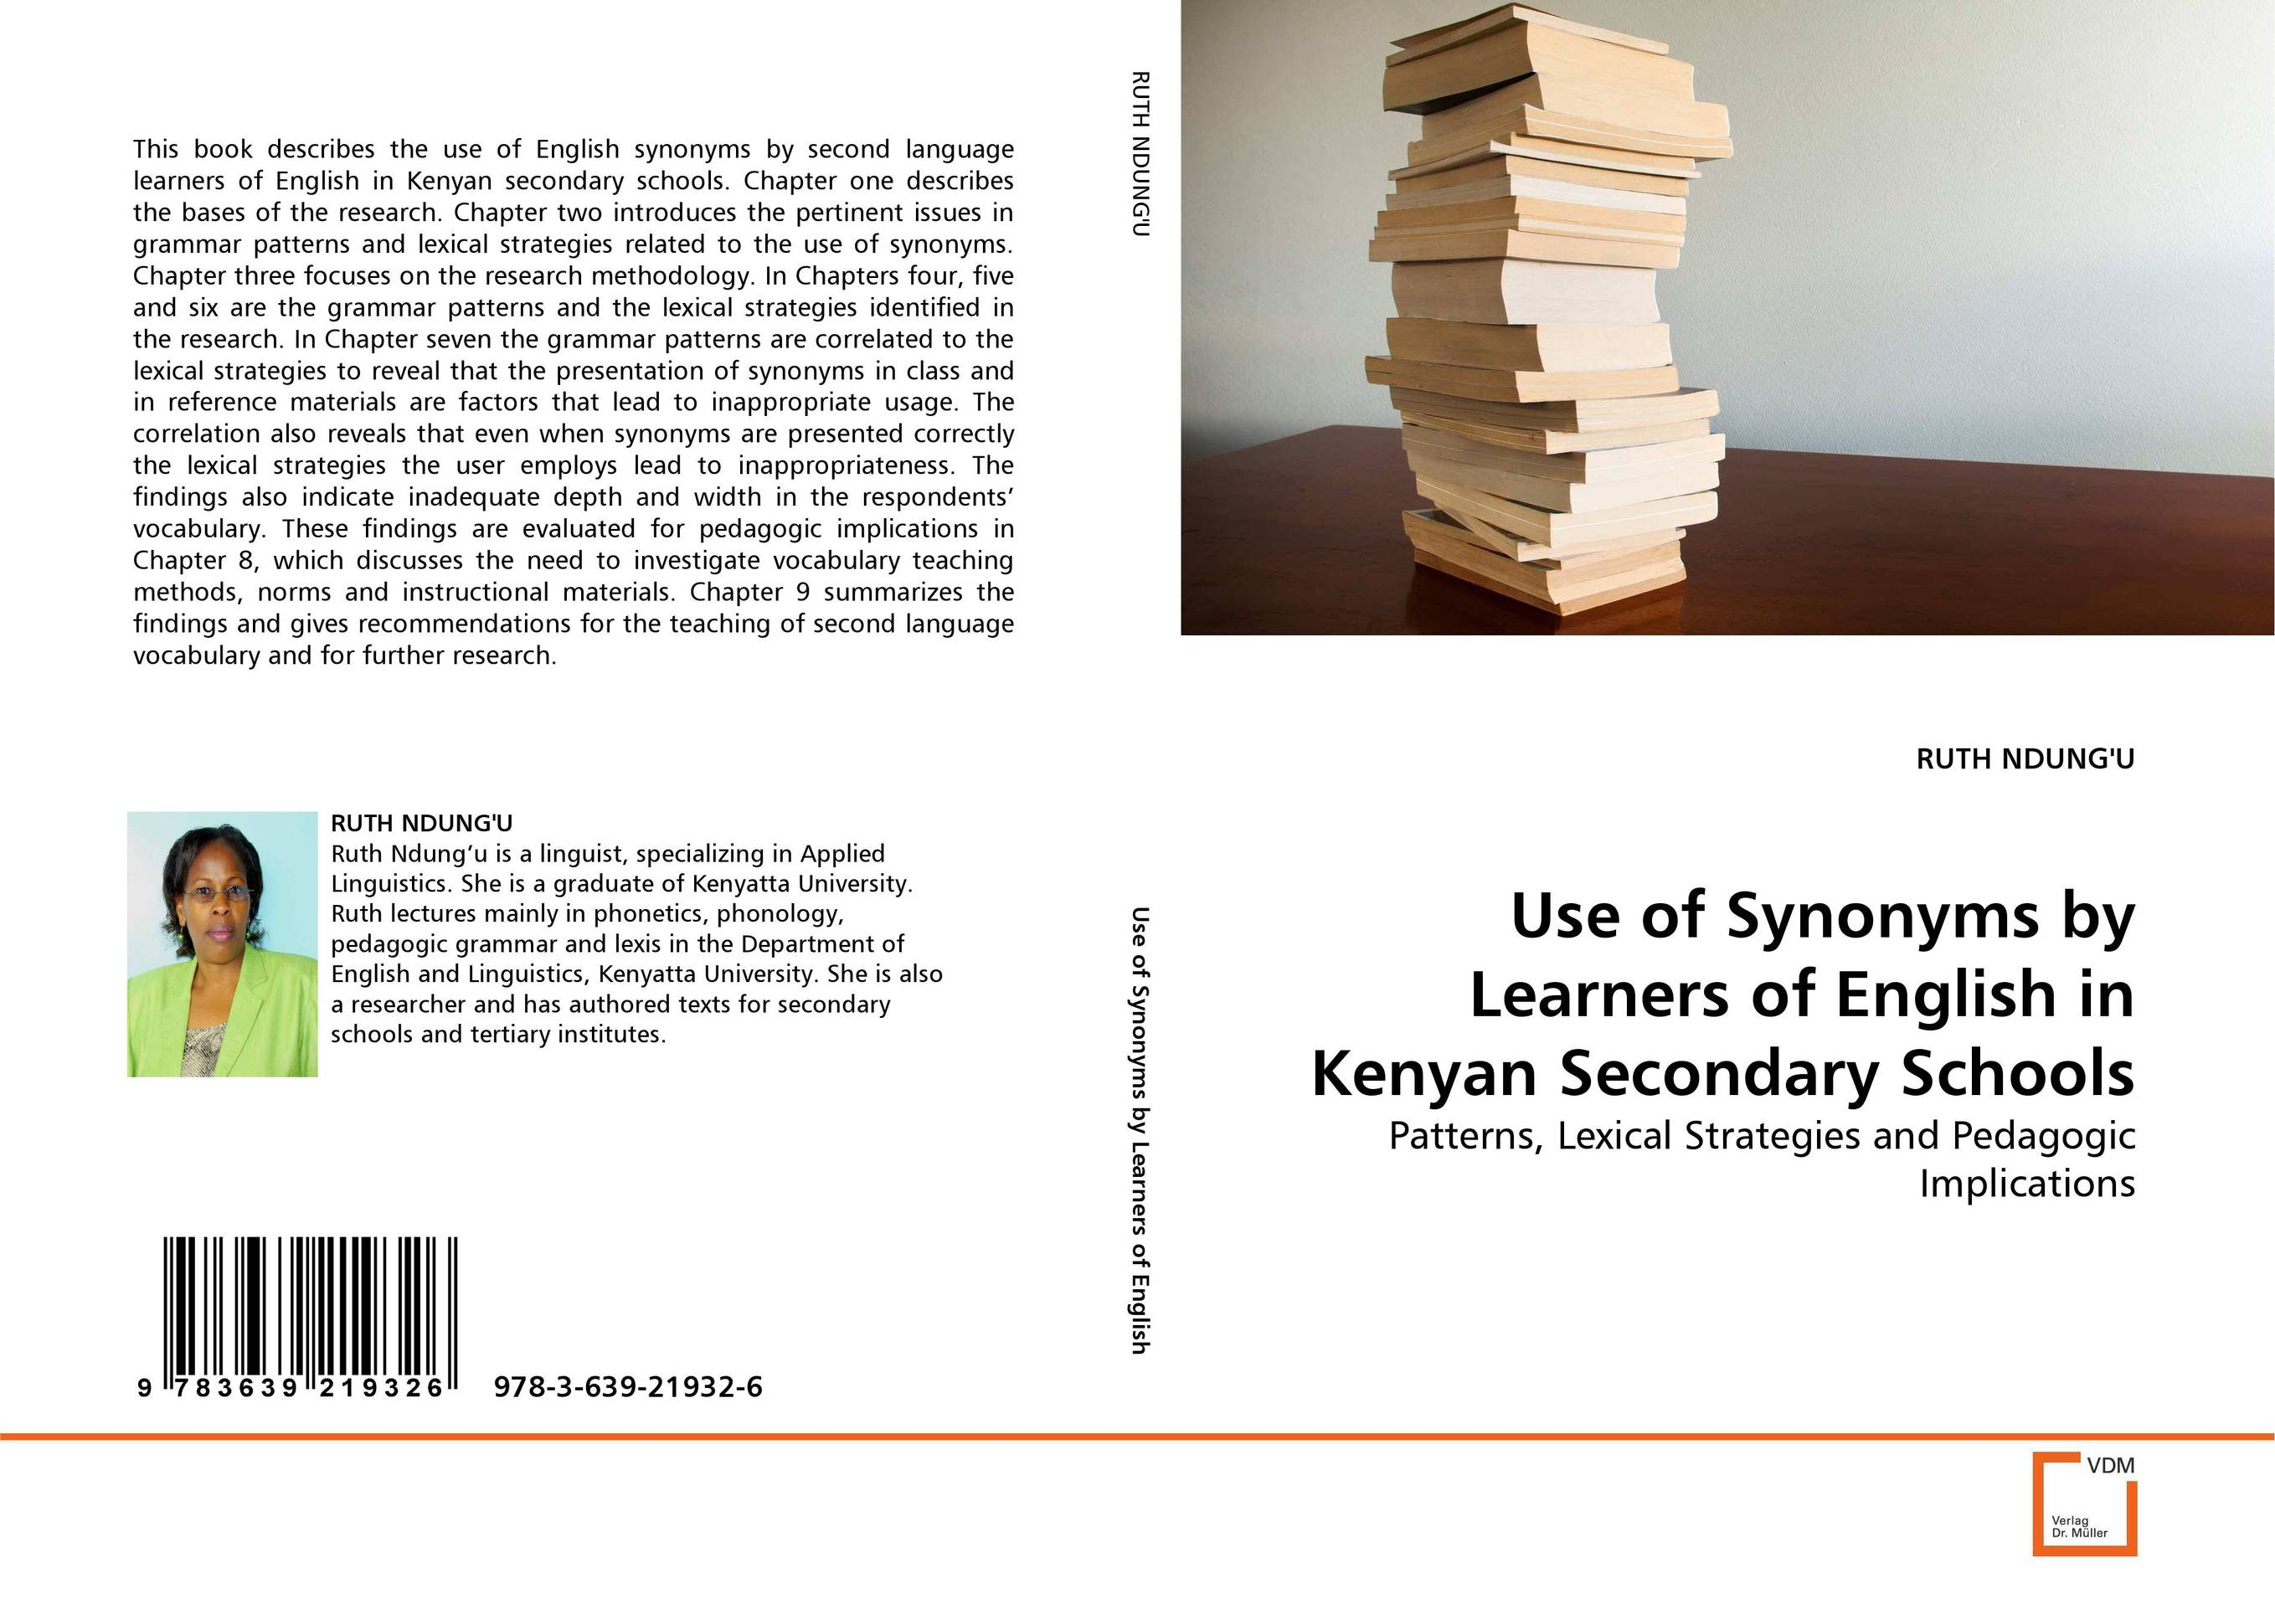 Use of Synonyms by Learners of English in Kenyan Secondary Schools the use of instructional materials in the pedagogy of english